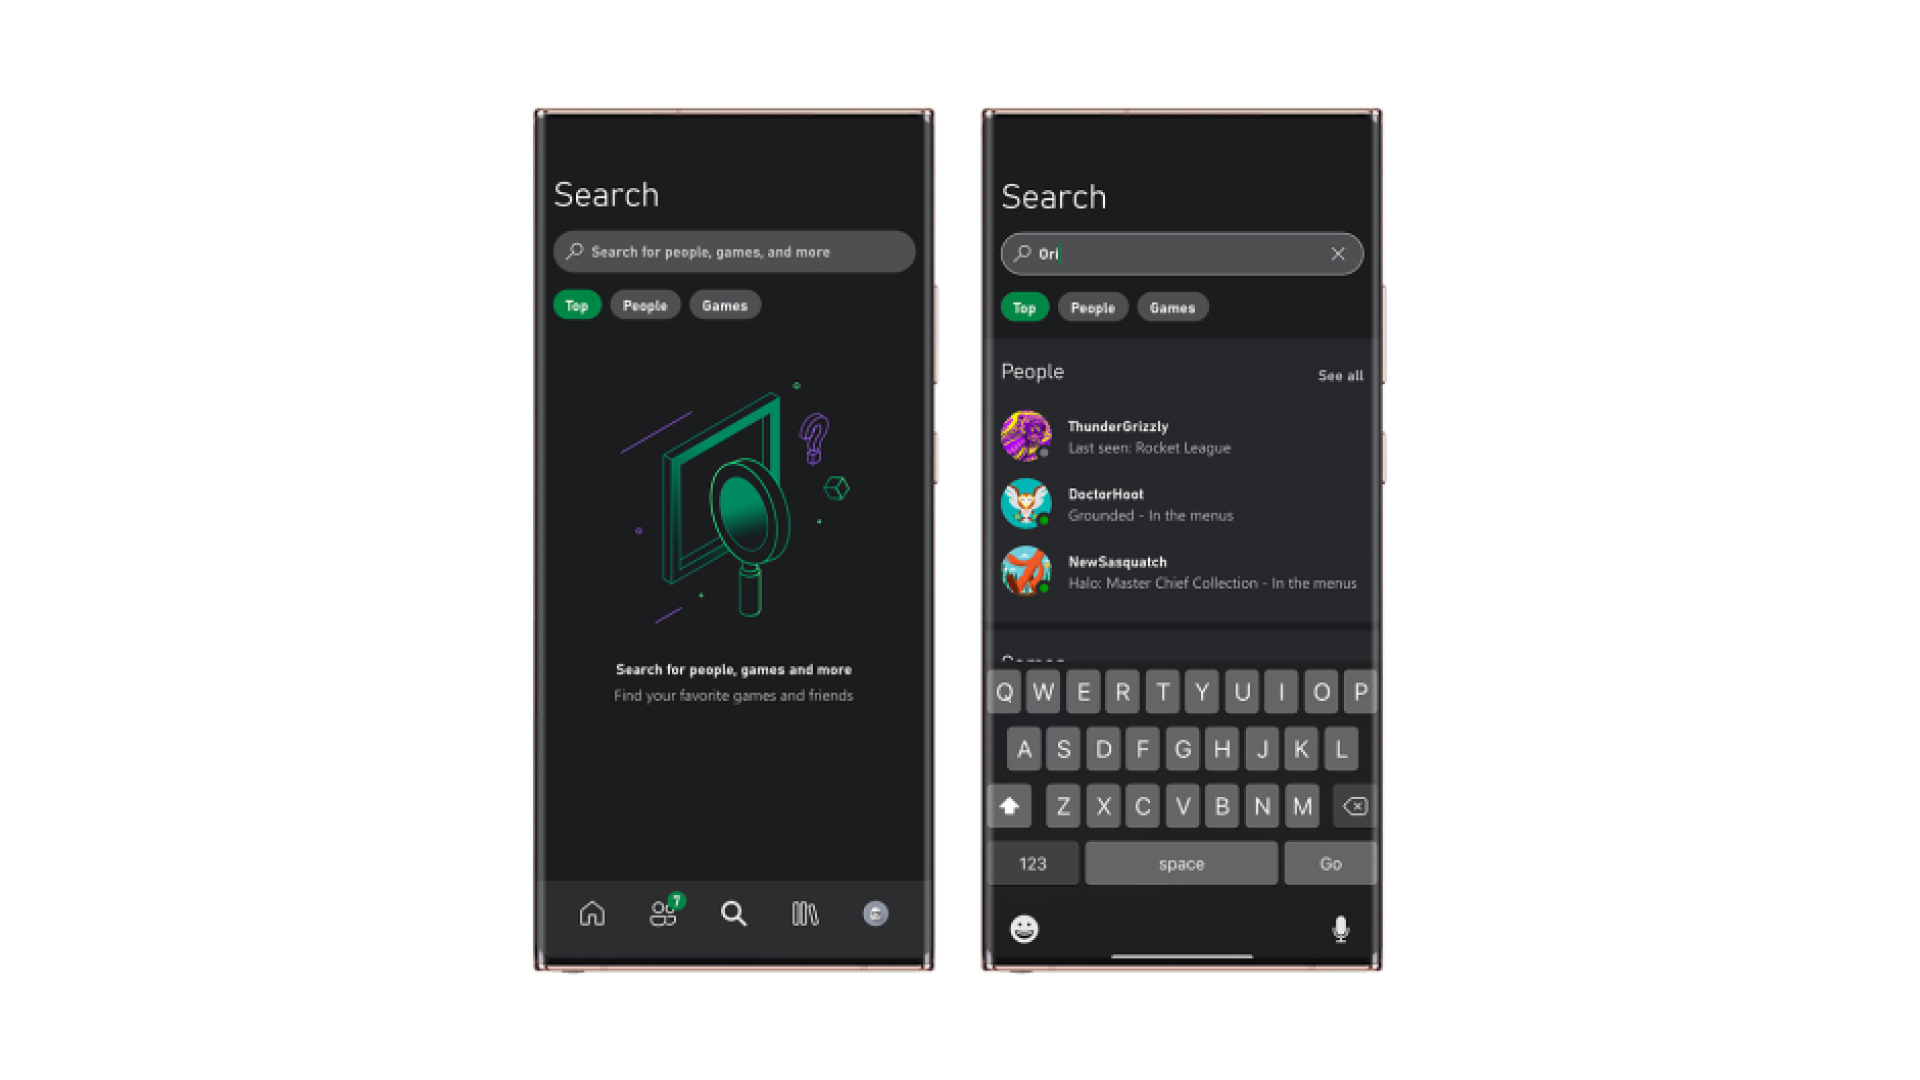 Xbox Mobile Search